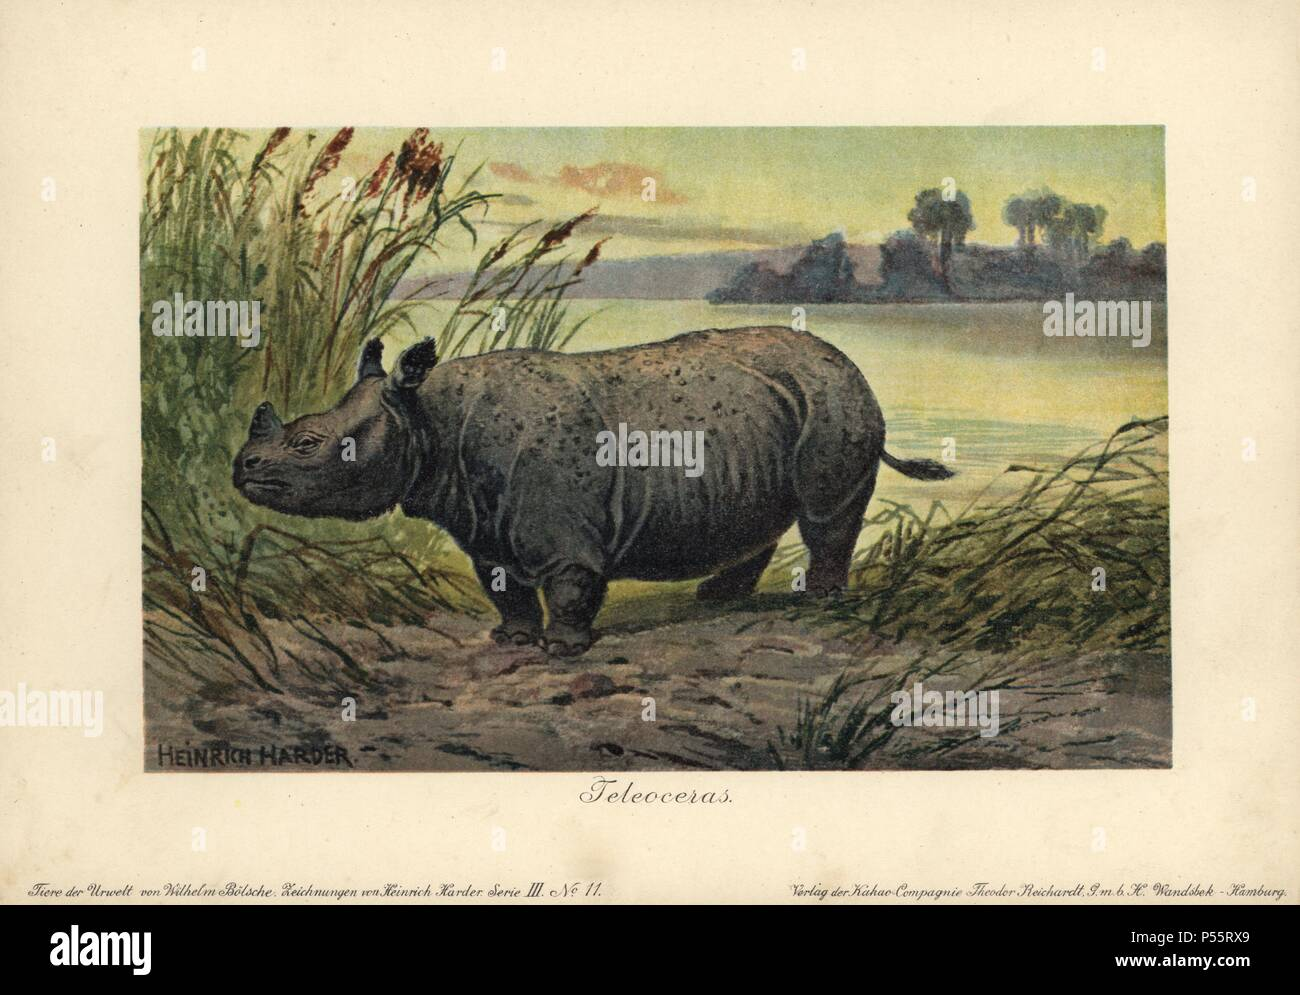 Teleoceras, extinct genus of grazing rhinoceros of the Miocene to early Pliocene epoch. Colour printed (chromolithograph) illustration by Heinrich Harder from 'Tiere der Urwelt' Animals of the Prehistoric World, 1916, Hamburg. Heinrich Harder (1858-1935) was a German landscape artist and book illustrator. From a series of prehistoric creature cards published by the Reichardt Cocoa company. Natural historian Wilhelm Bolsche wrote the descriptive text. - Stock Image